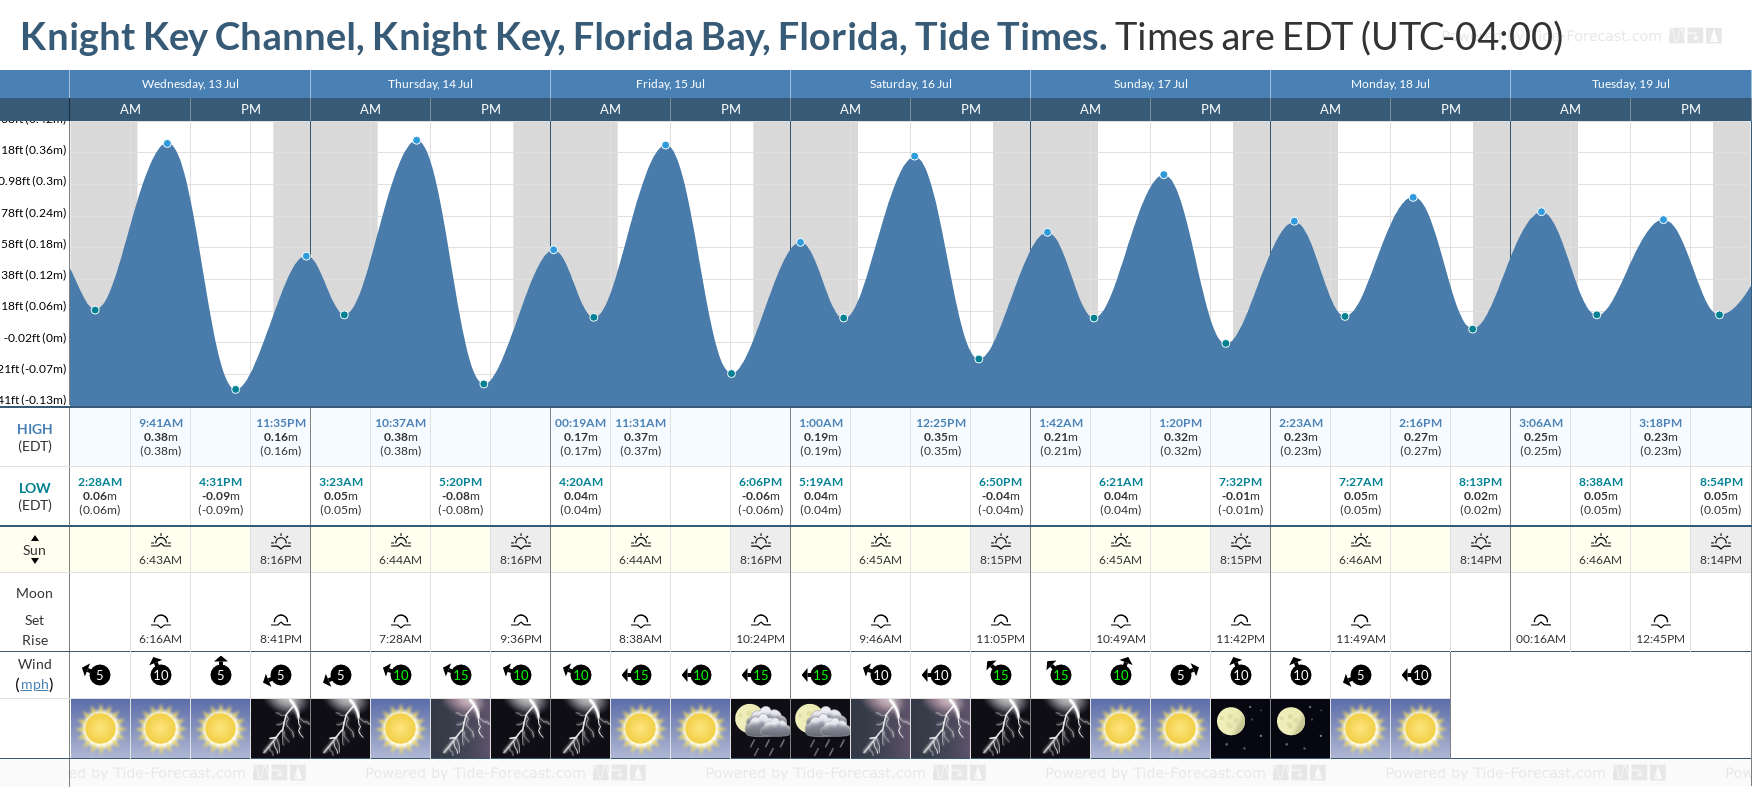 Knight Key Channel, Knight Key, Florida Bay, Florida Tide Chart including high and low tide tide times for the next 7 days